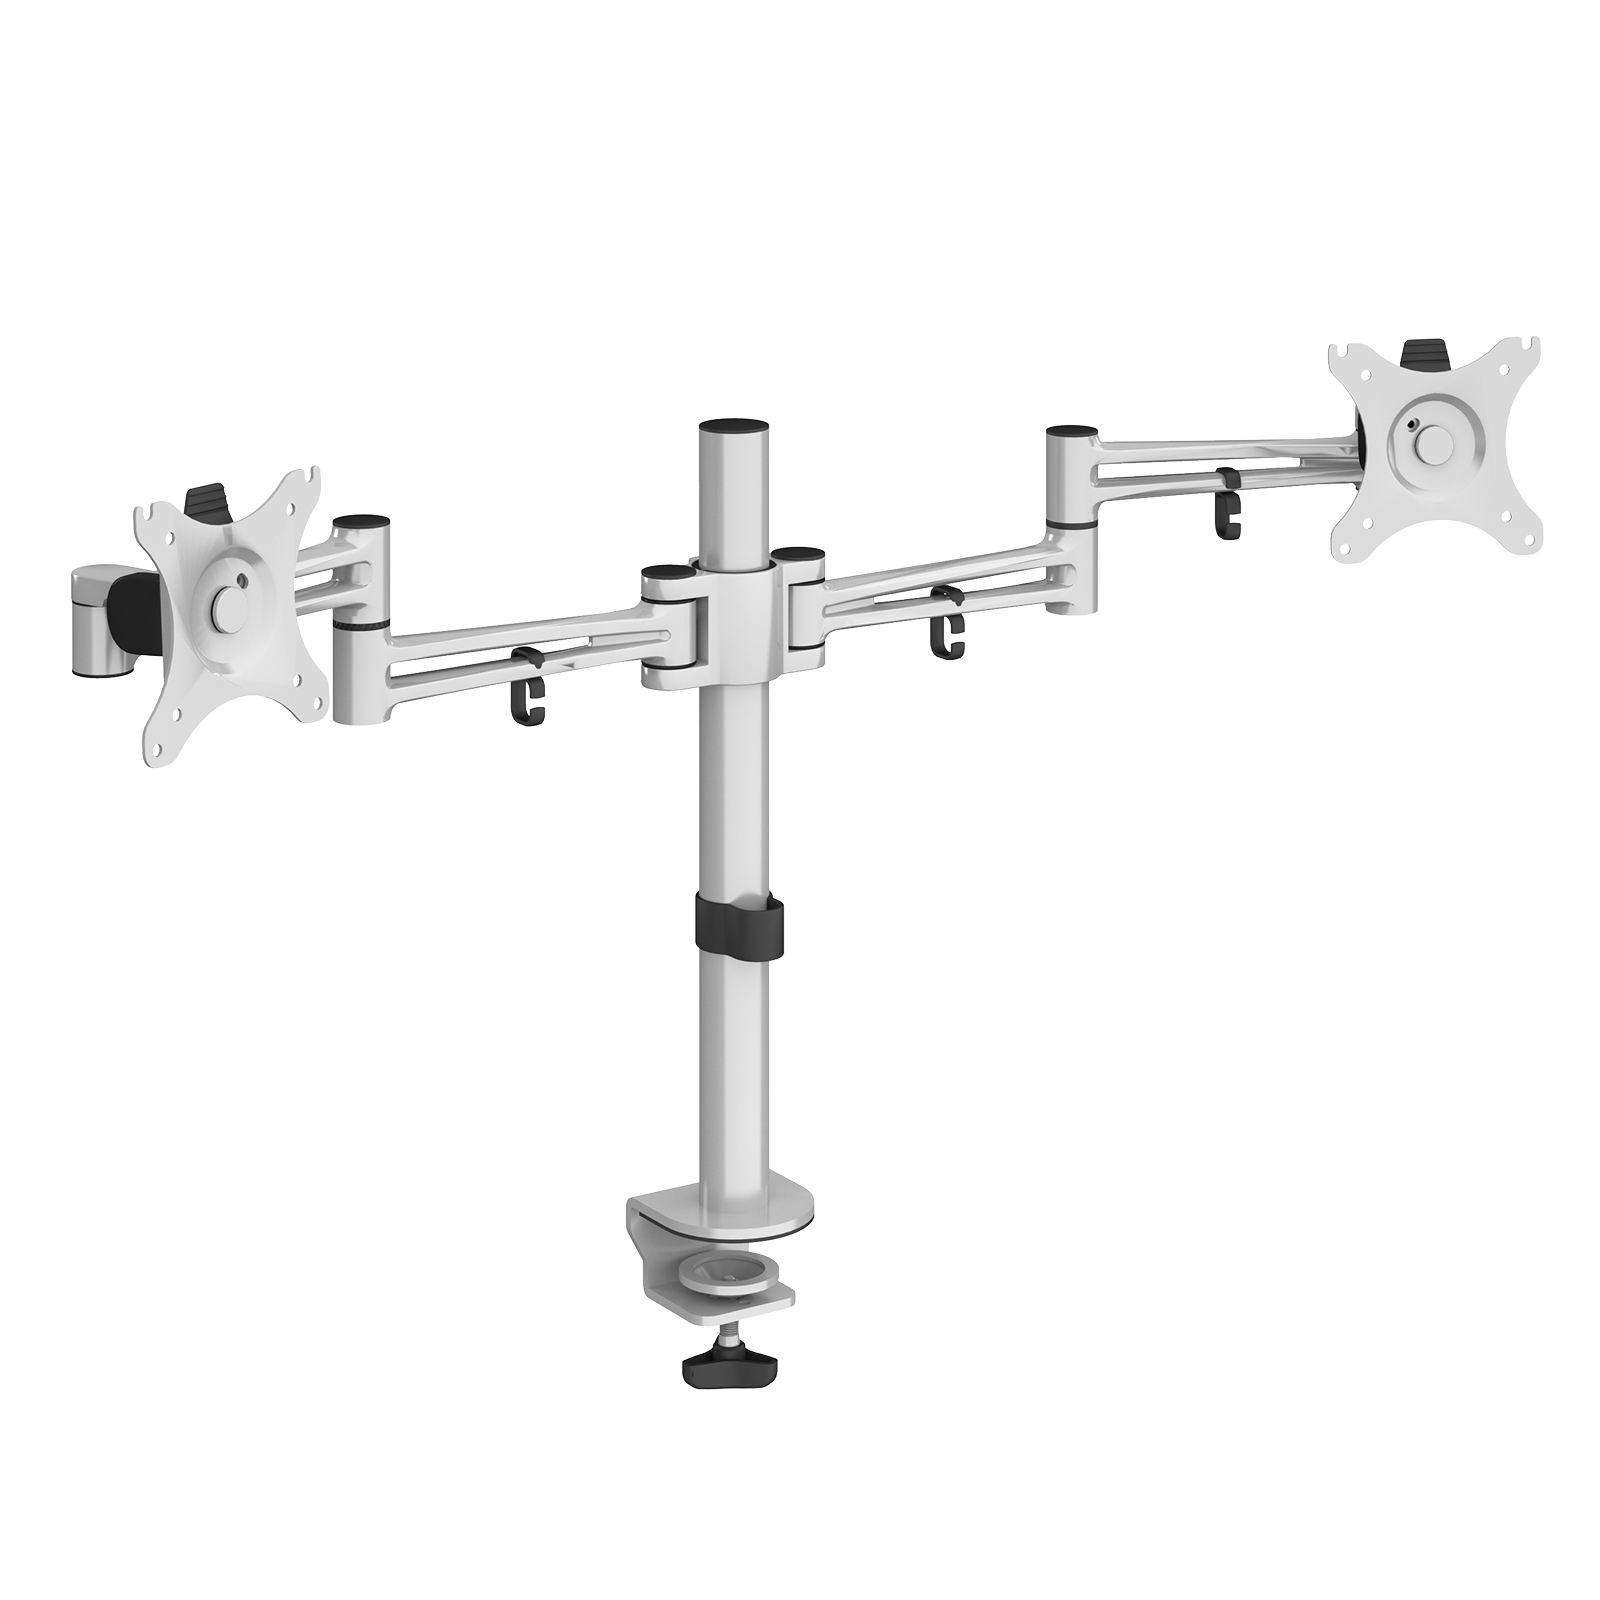 Arms Luna double flat screen monitor arm - silver